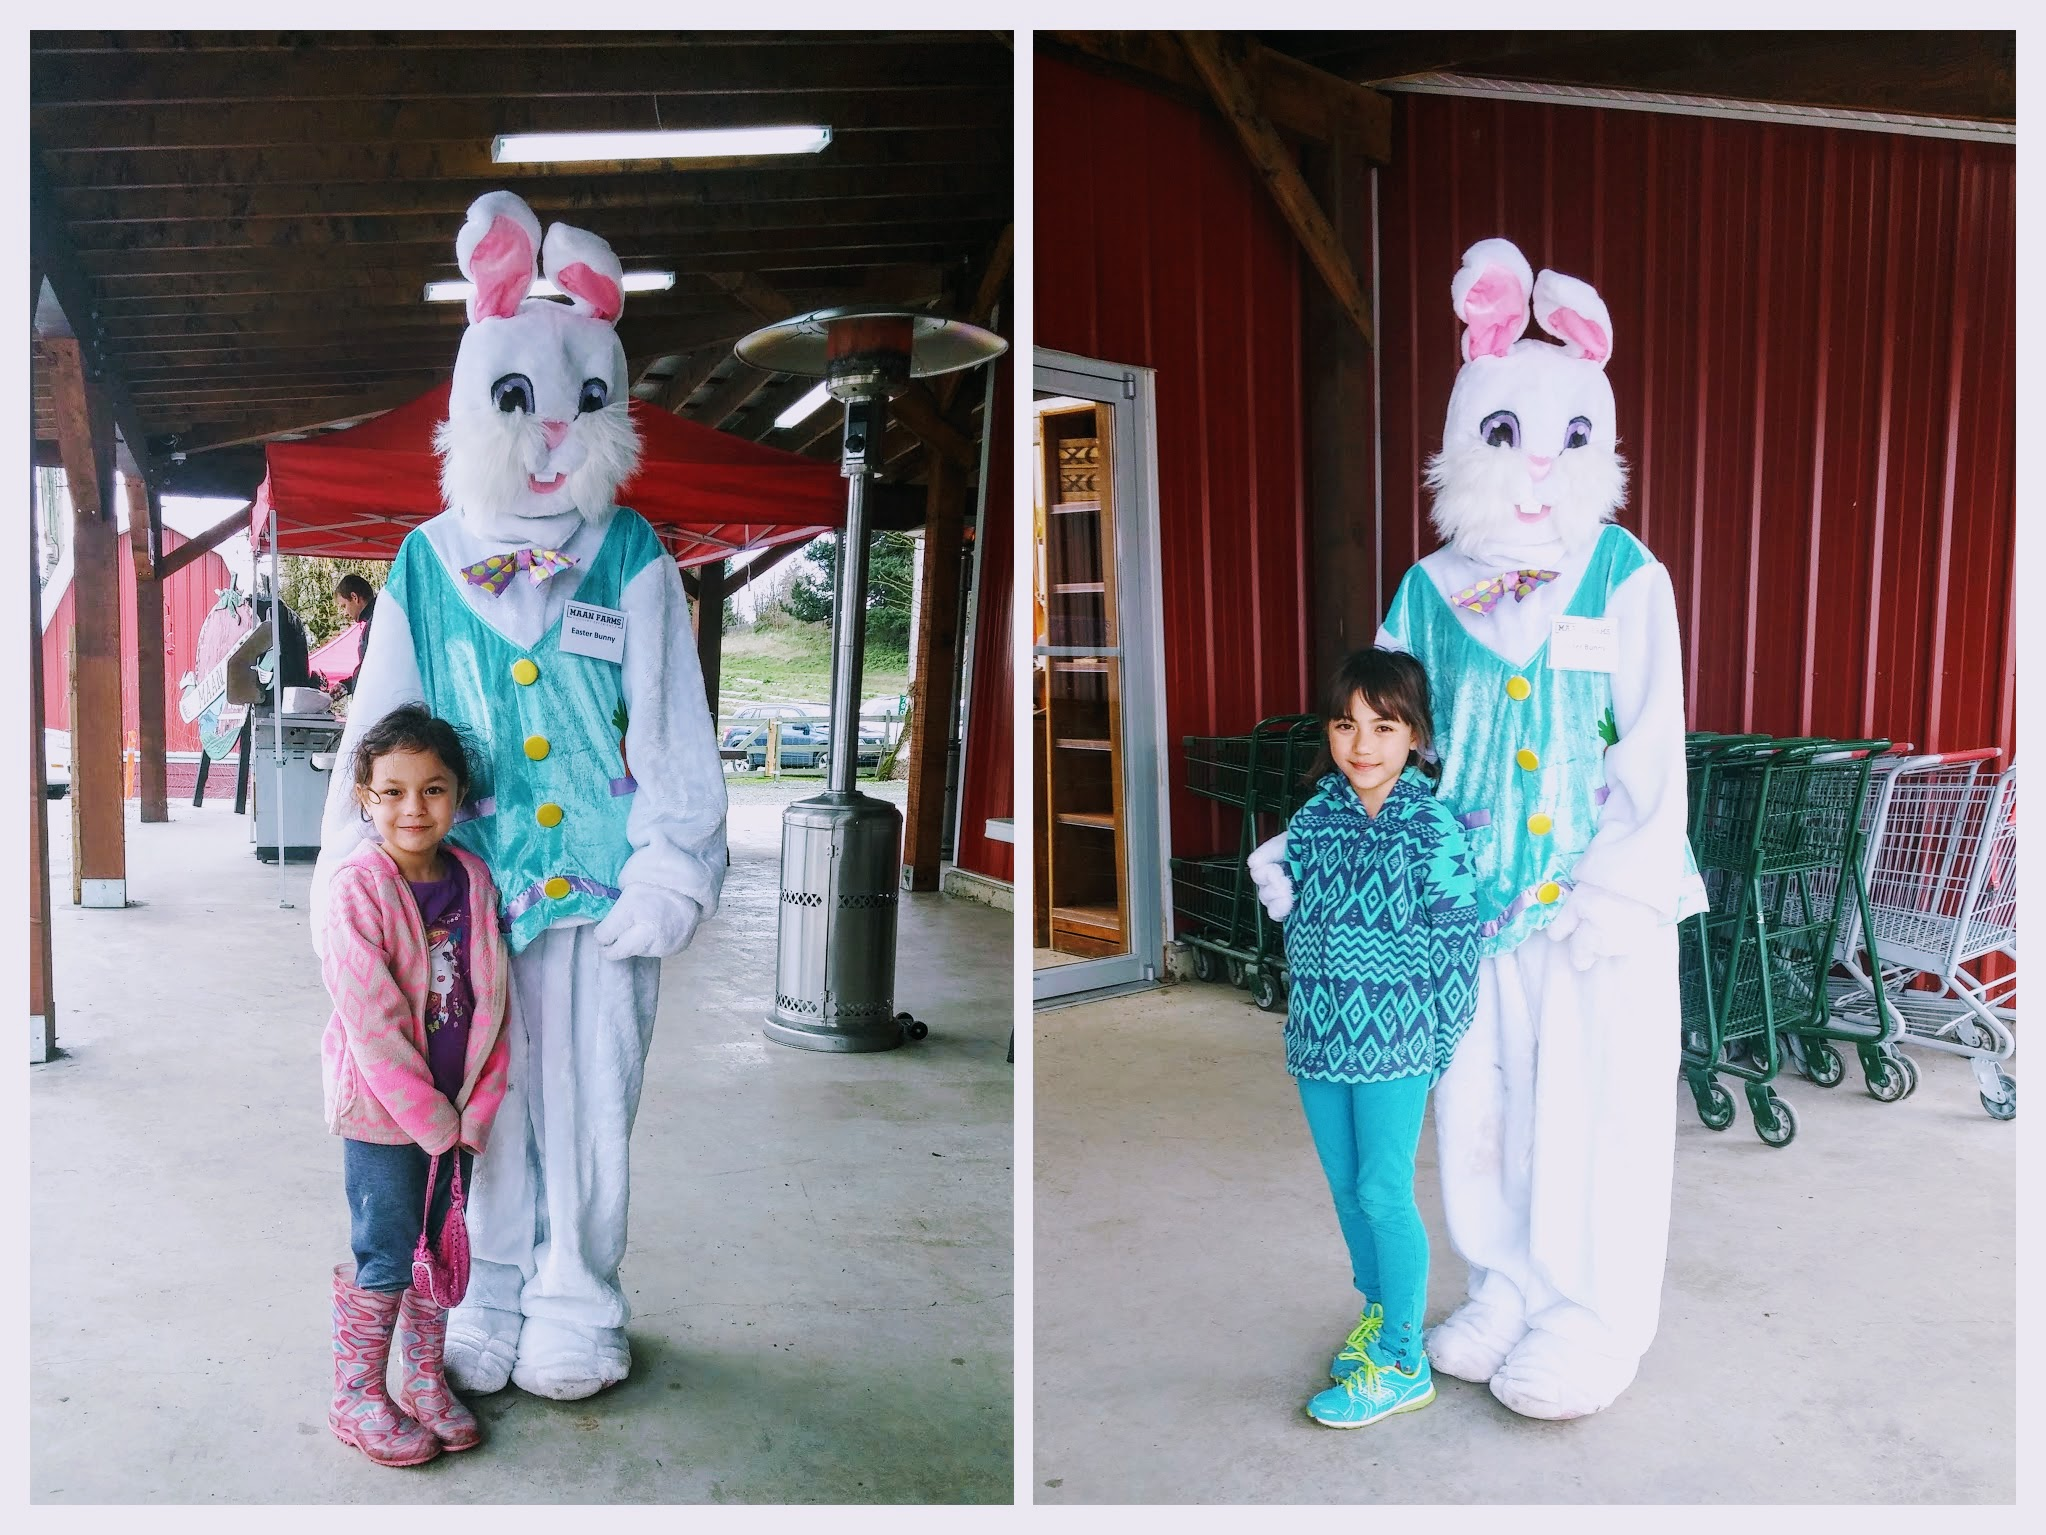 They were both so happy because they were able to take a picture with the lady bunny.